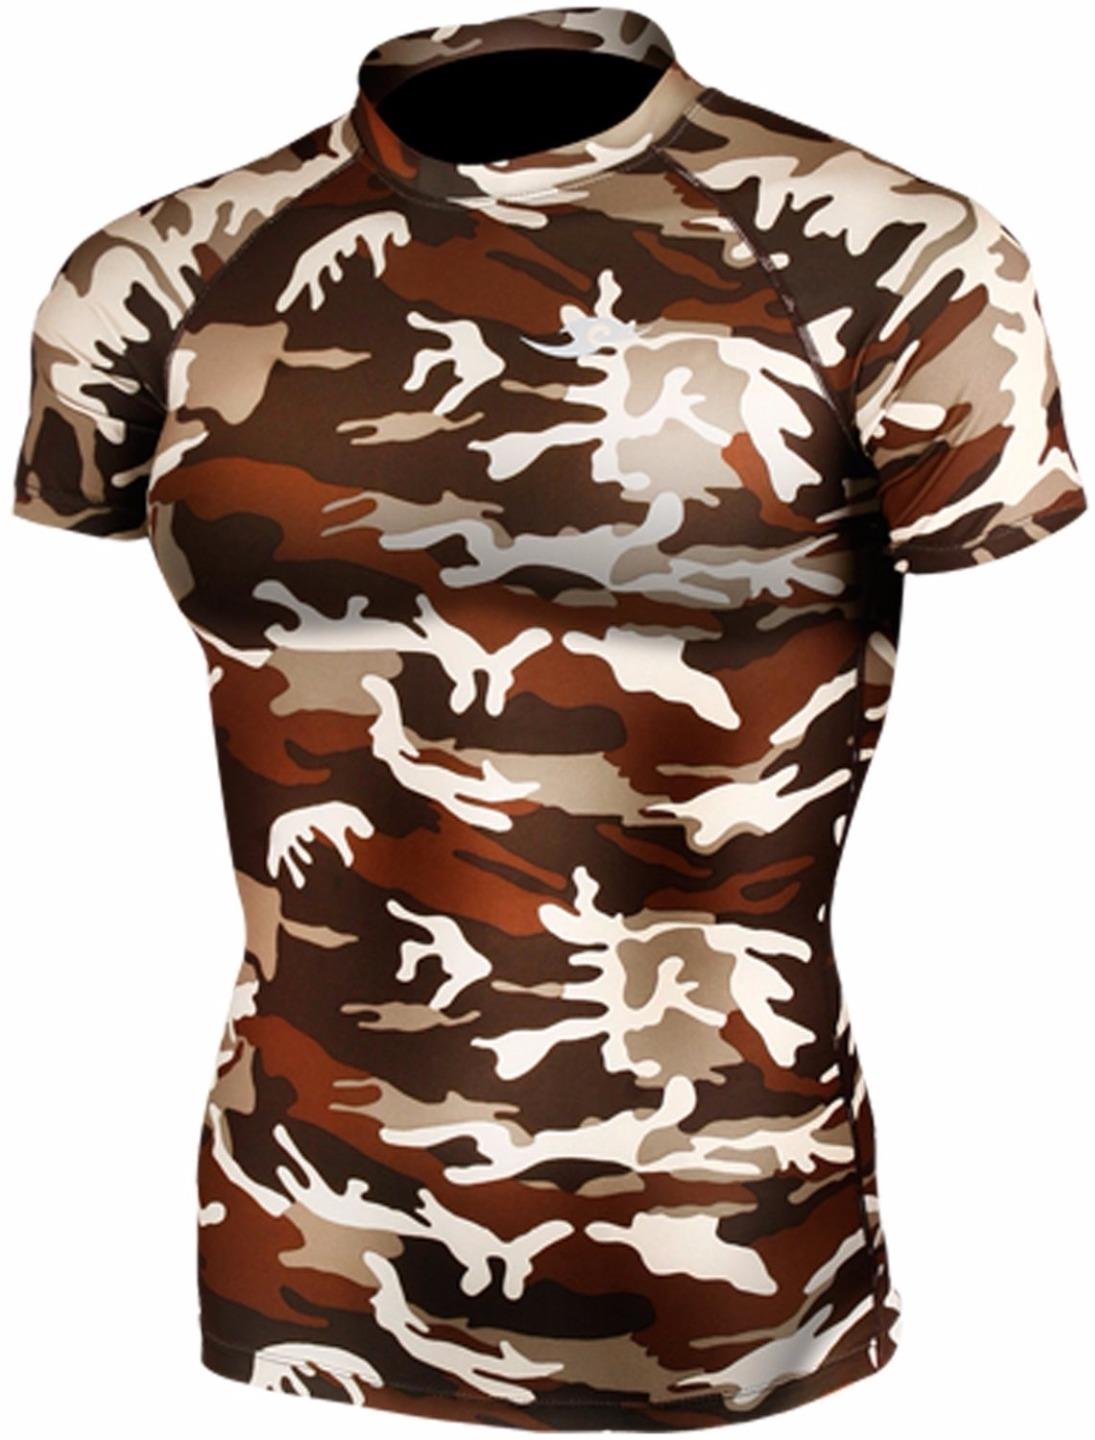 New 063 Skin Tight Compression Base Layer Camo T Shirt Short Sleeve Mens